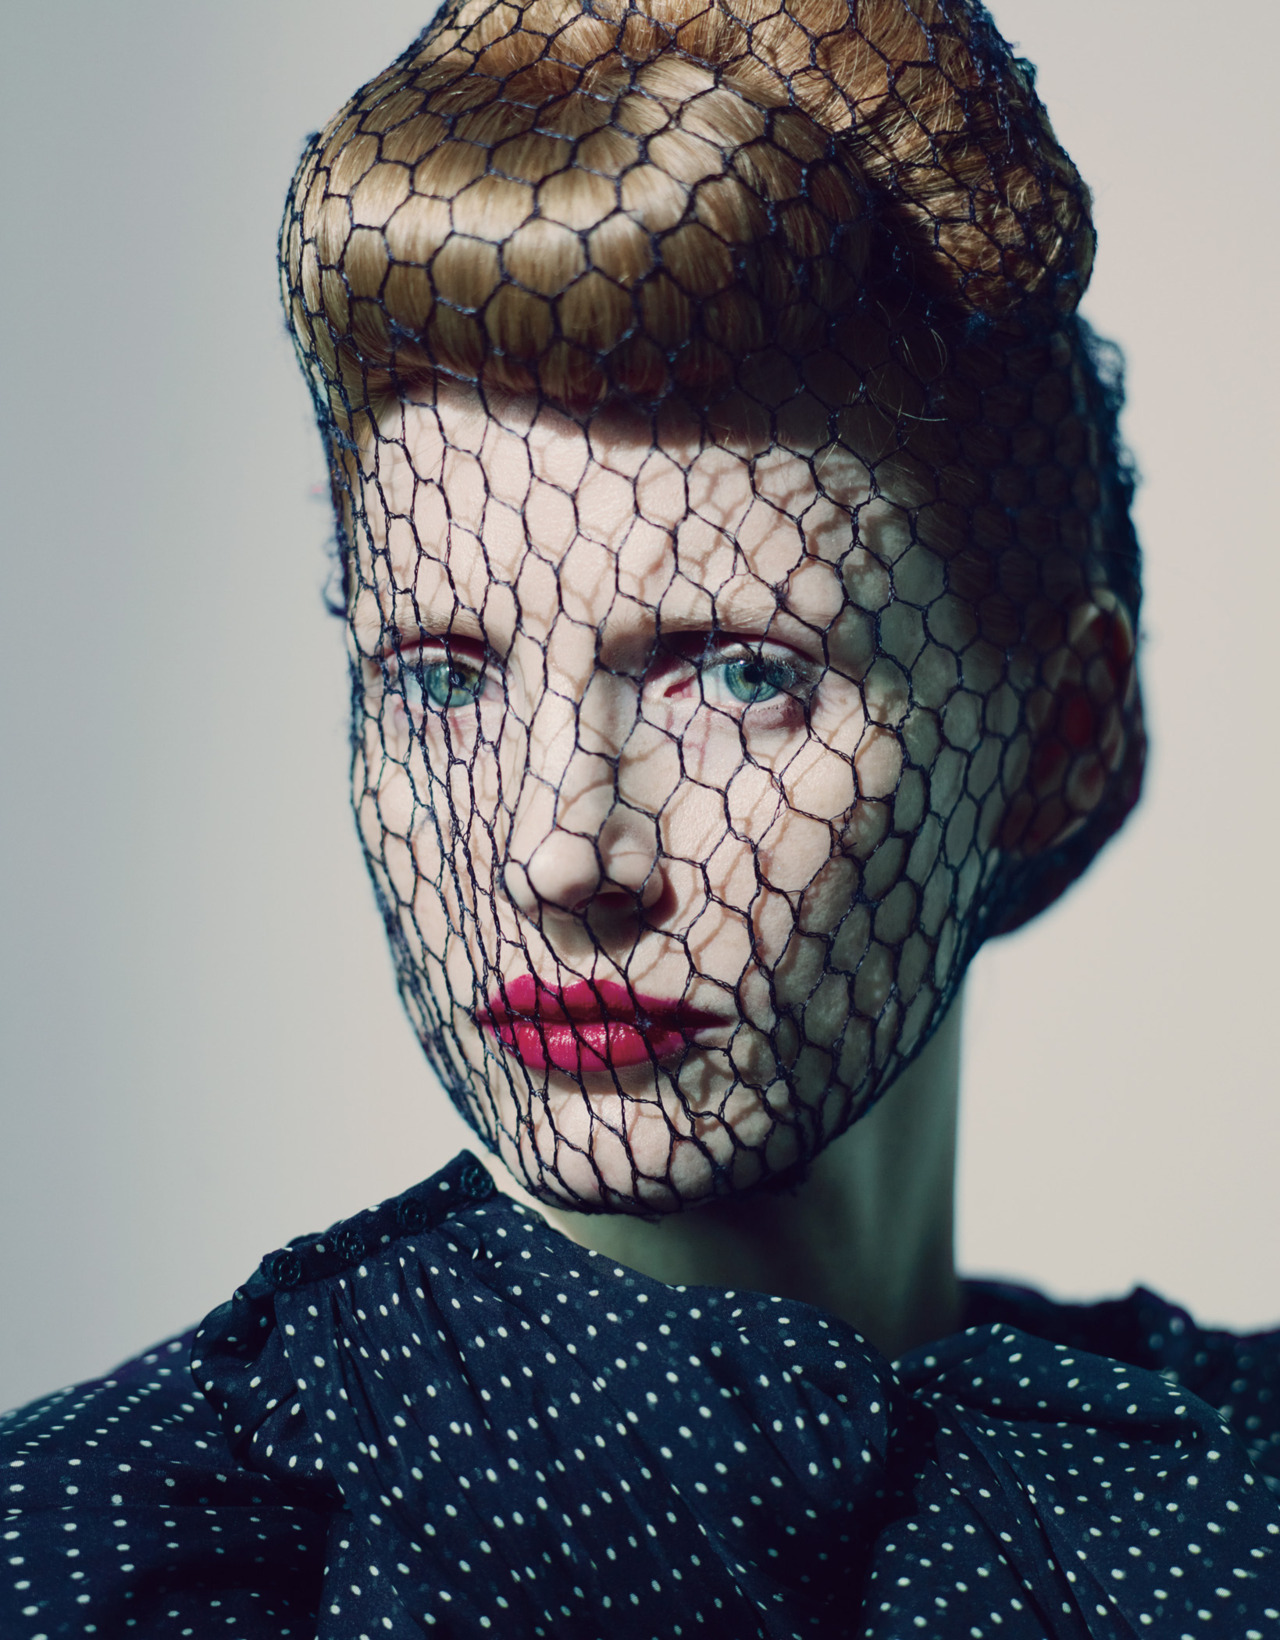 Photo by Paolo Roversi Jessica Chastain shows us what dreams and couture are made of.